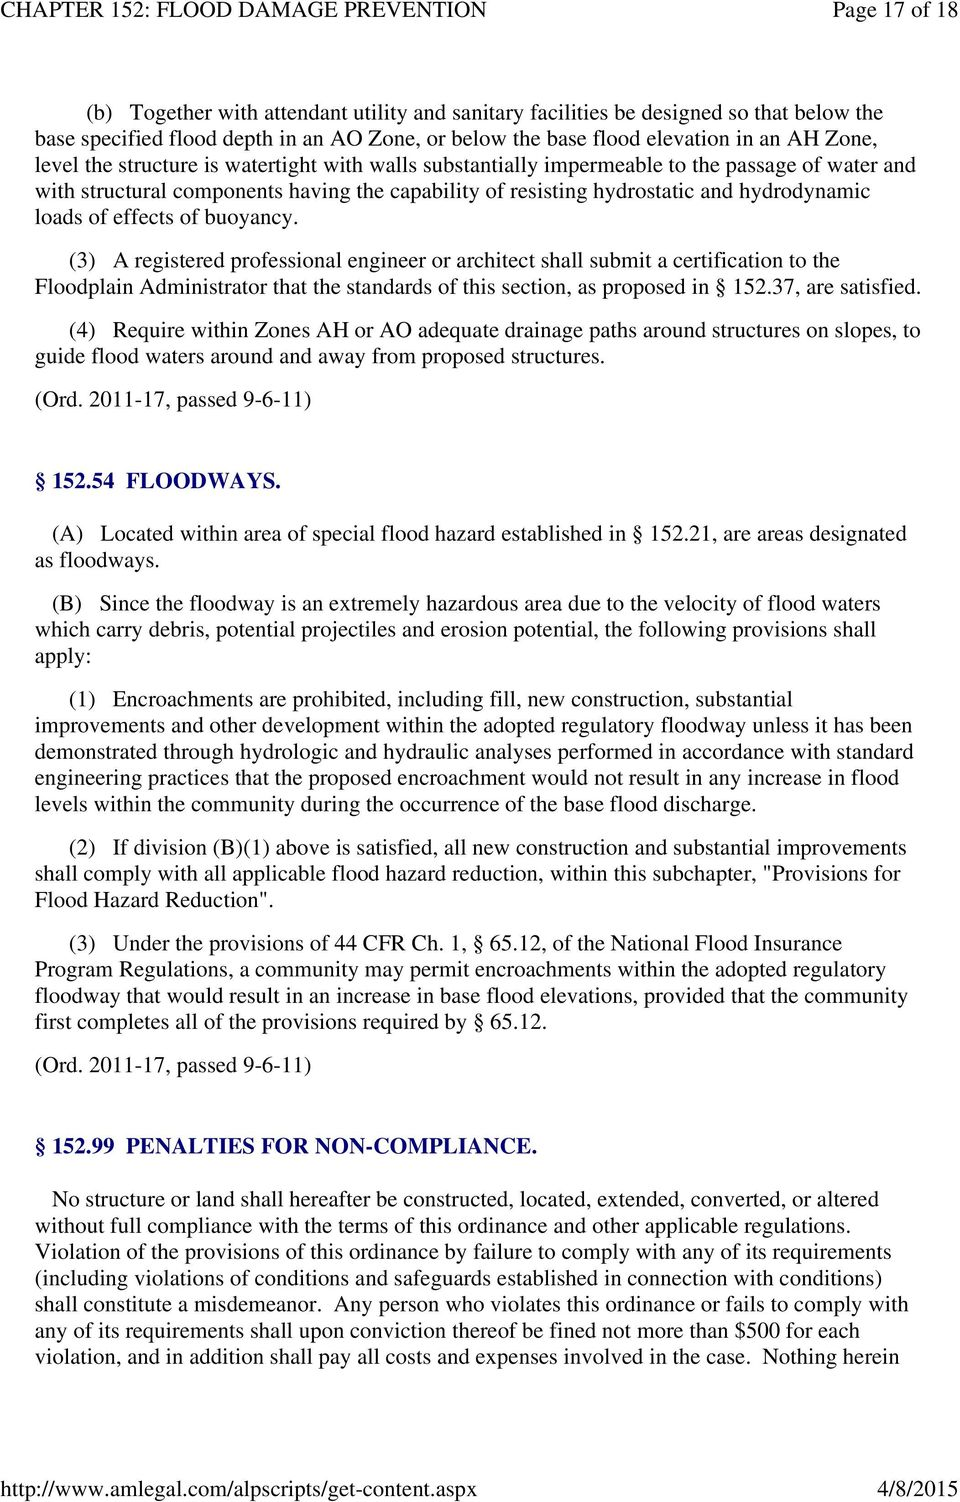 effects of buoyancy. (3) A registered professional engineer or architect shall submit a certification to the Floodplain Administrator that the standards of this section, as proposed in 152.